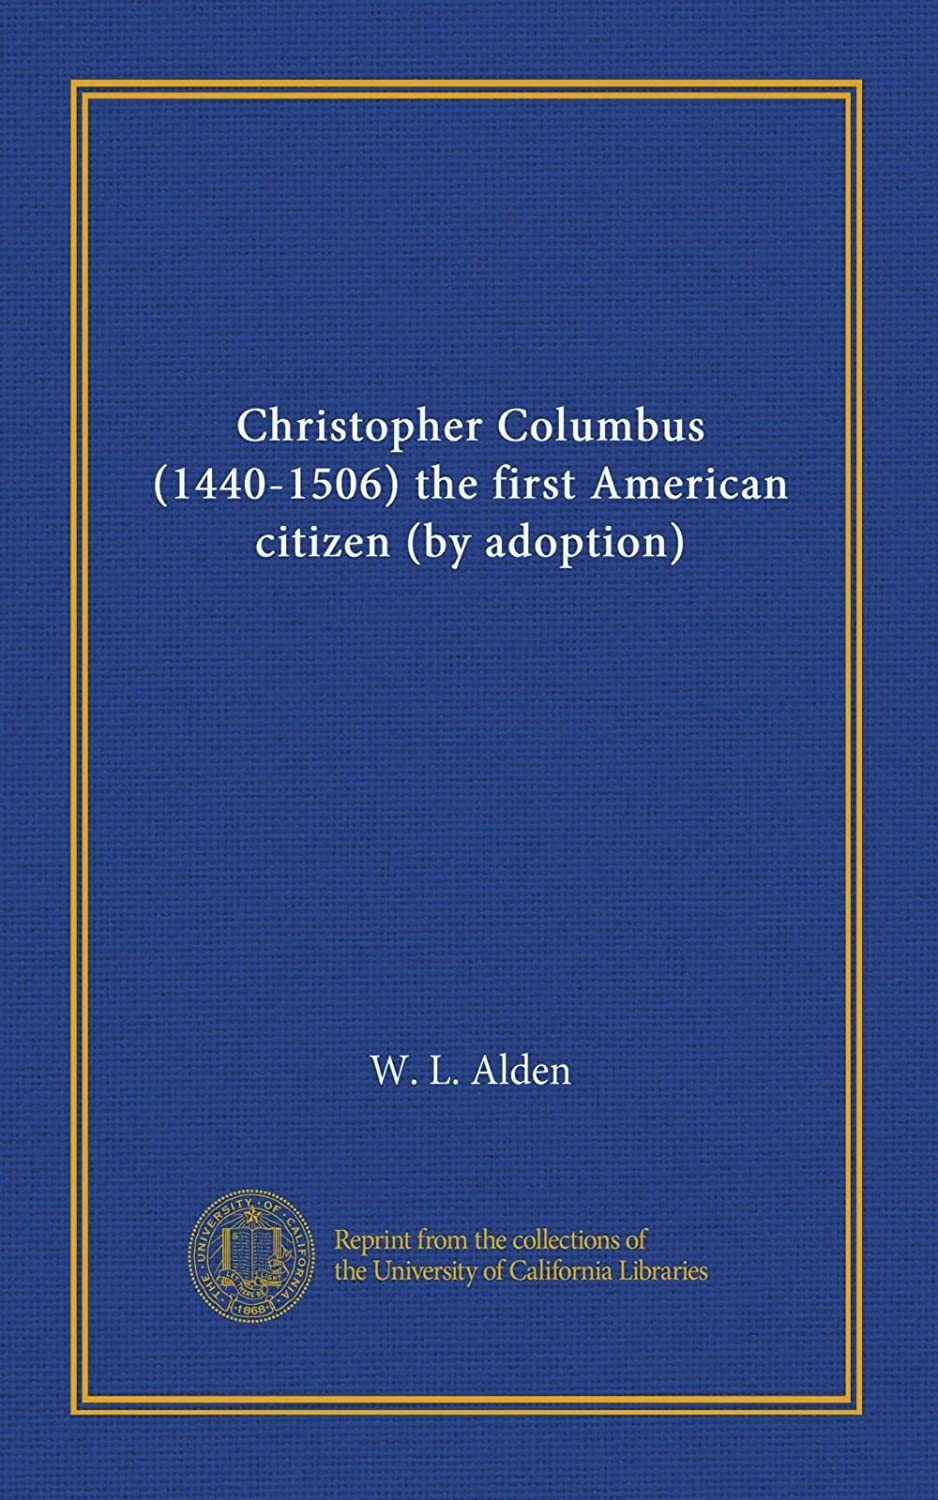 Christopher Columbus (1440-1506) the first American citizen (by adoption)